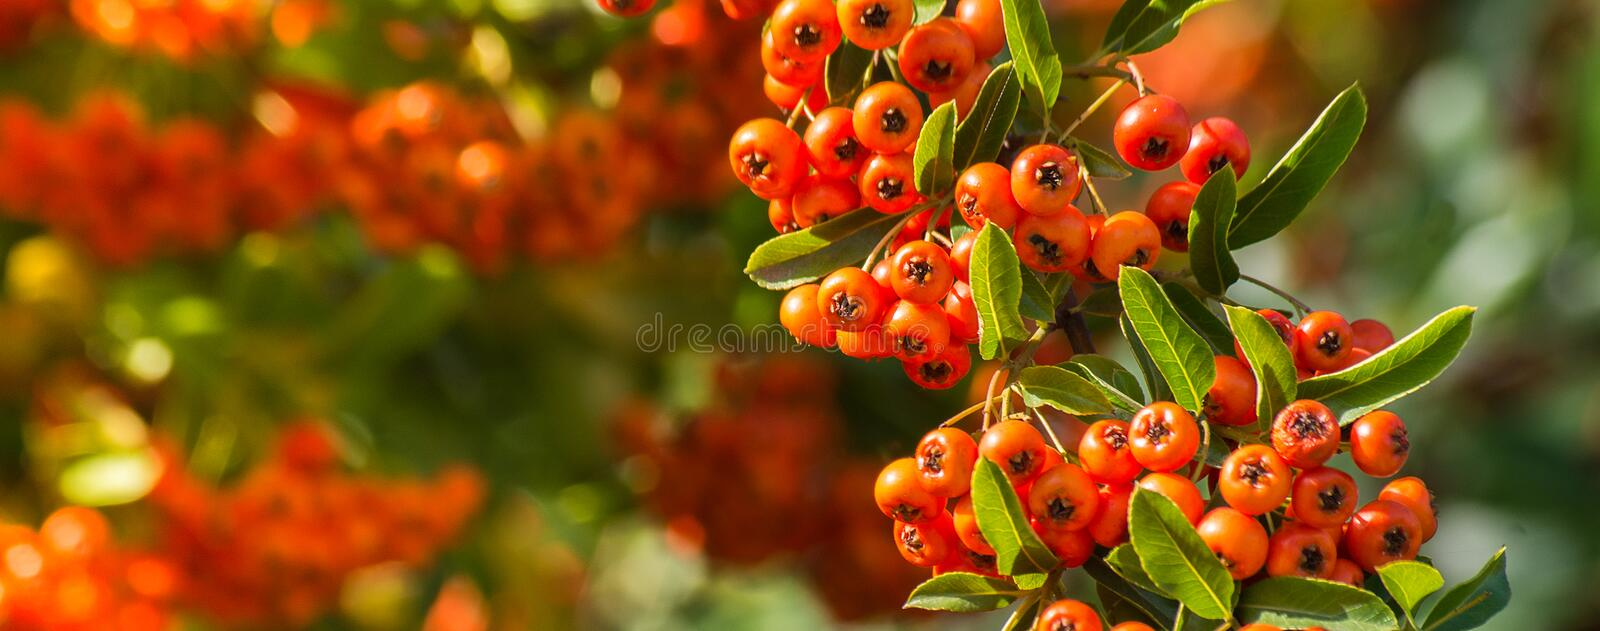 Branch of a red mountain ash on a blurred background of nature i royalty free stock photos